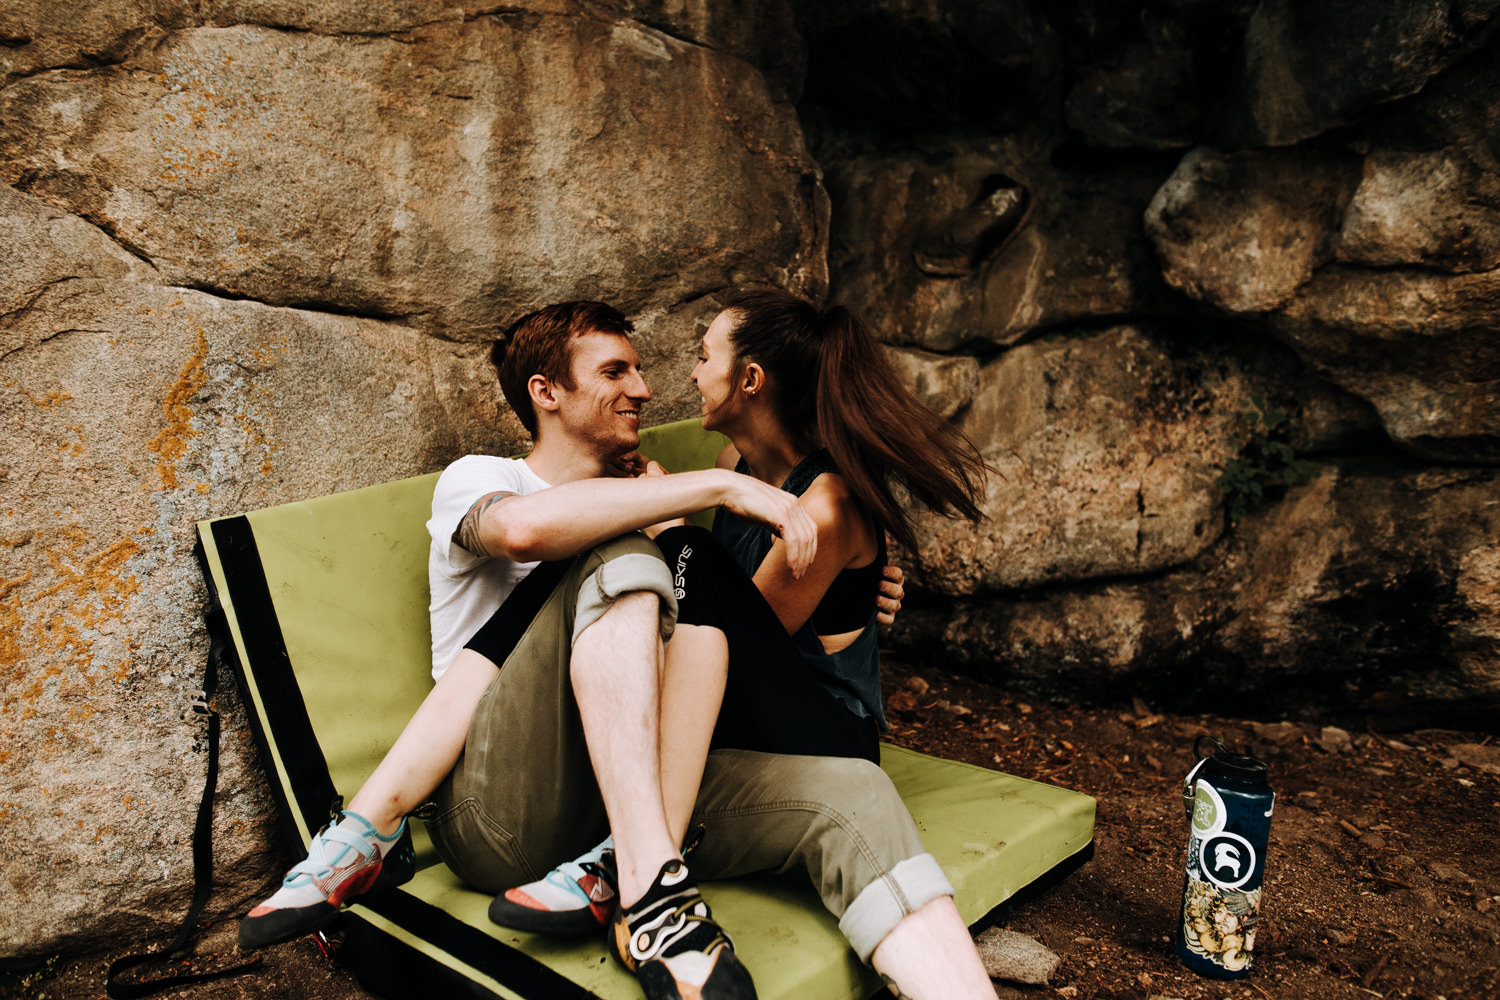 Rock climbing adventure couple sitting on bouldering pad laughing together